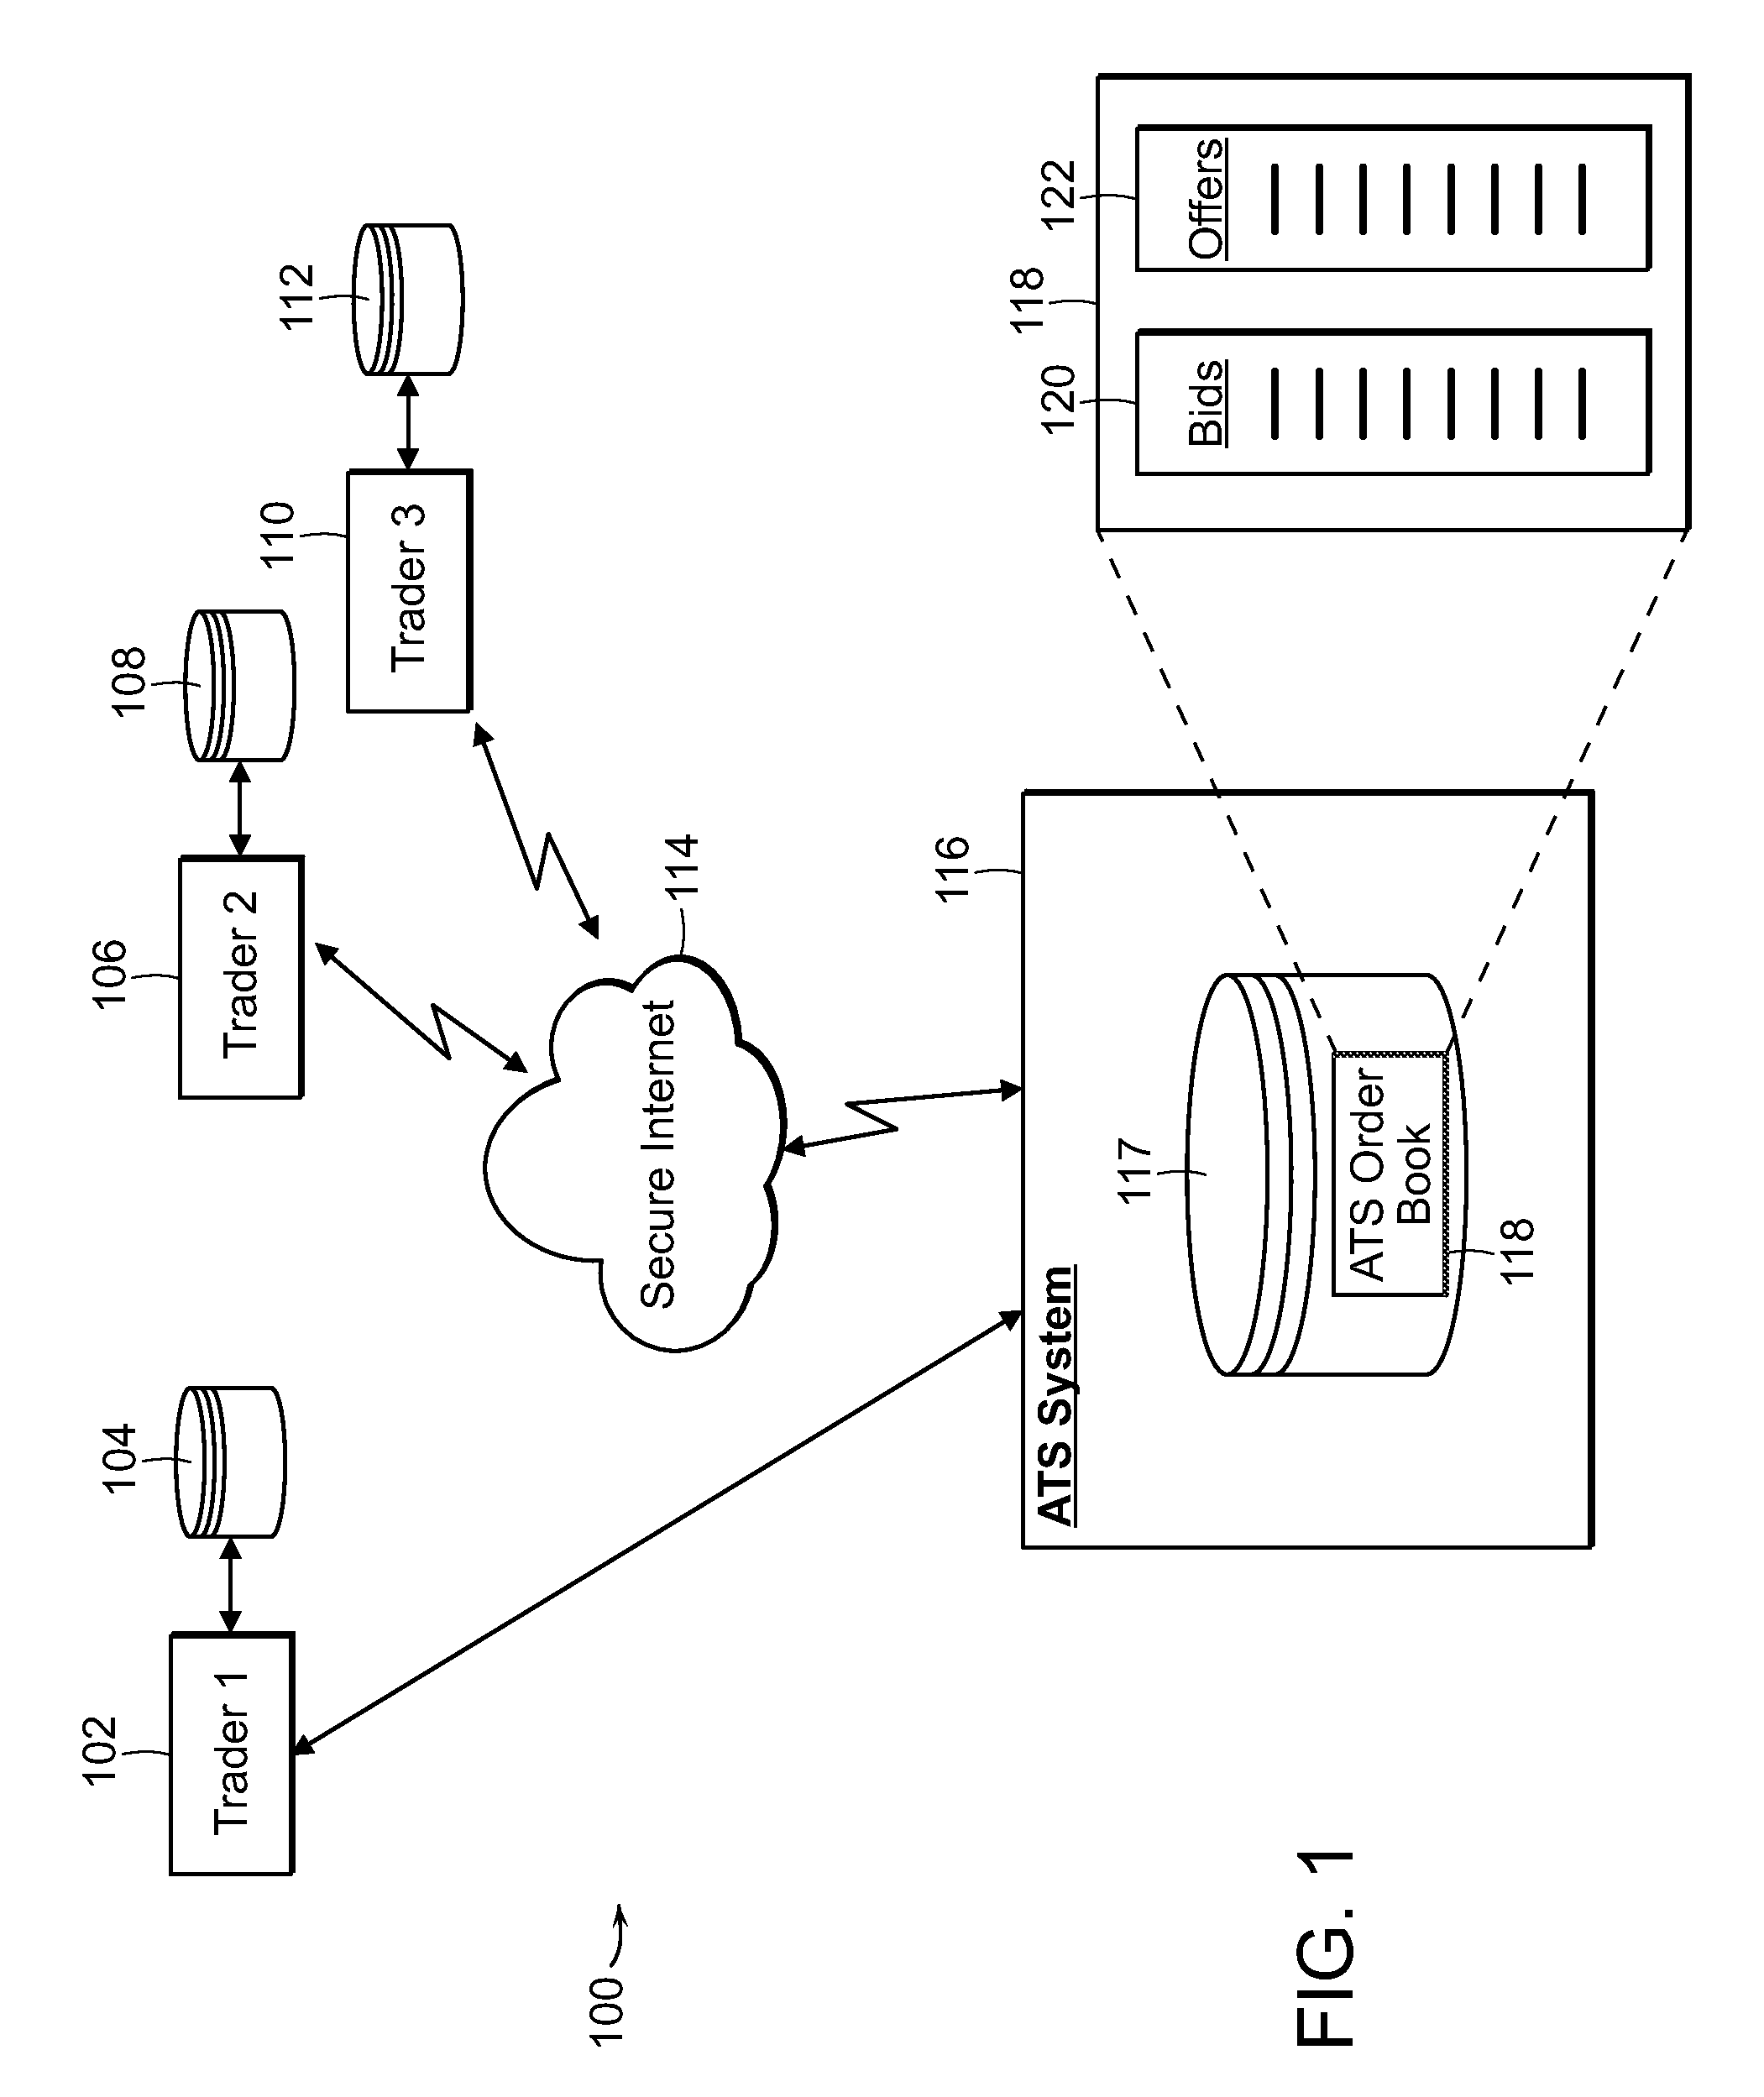 Optimization of trading systems and portfolios